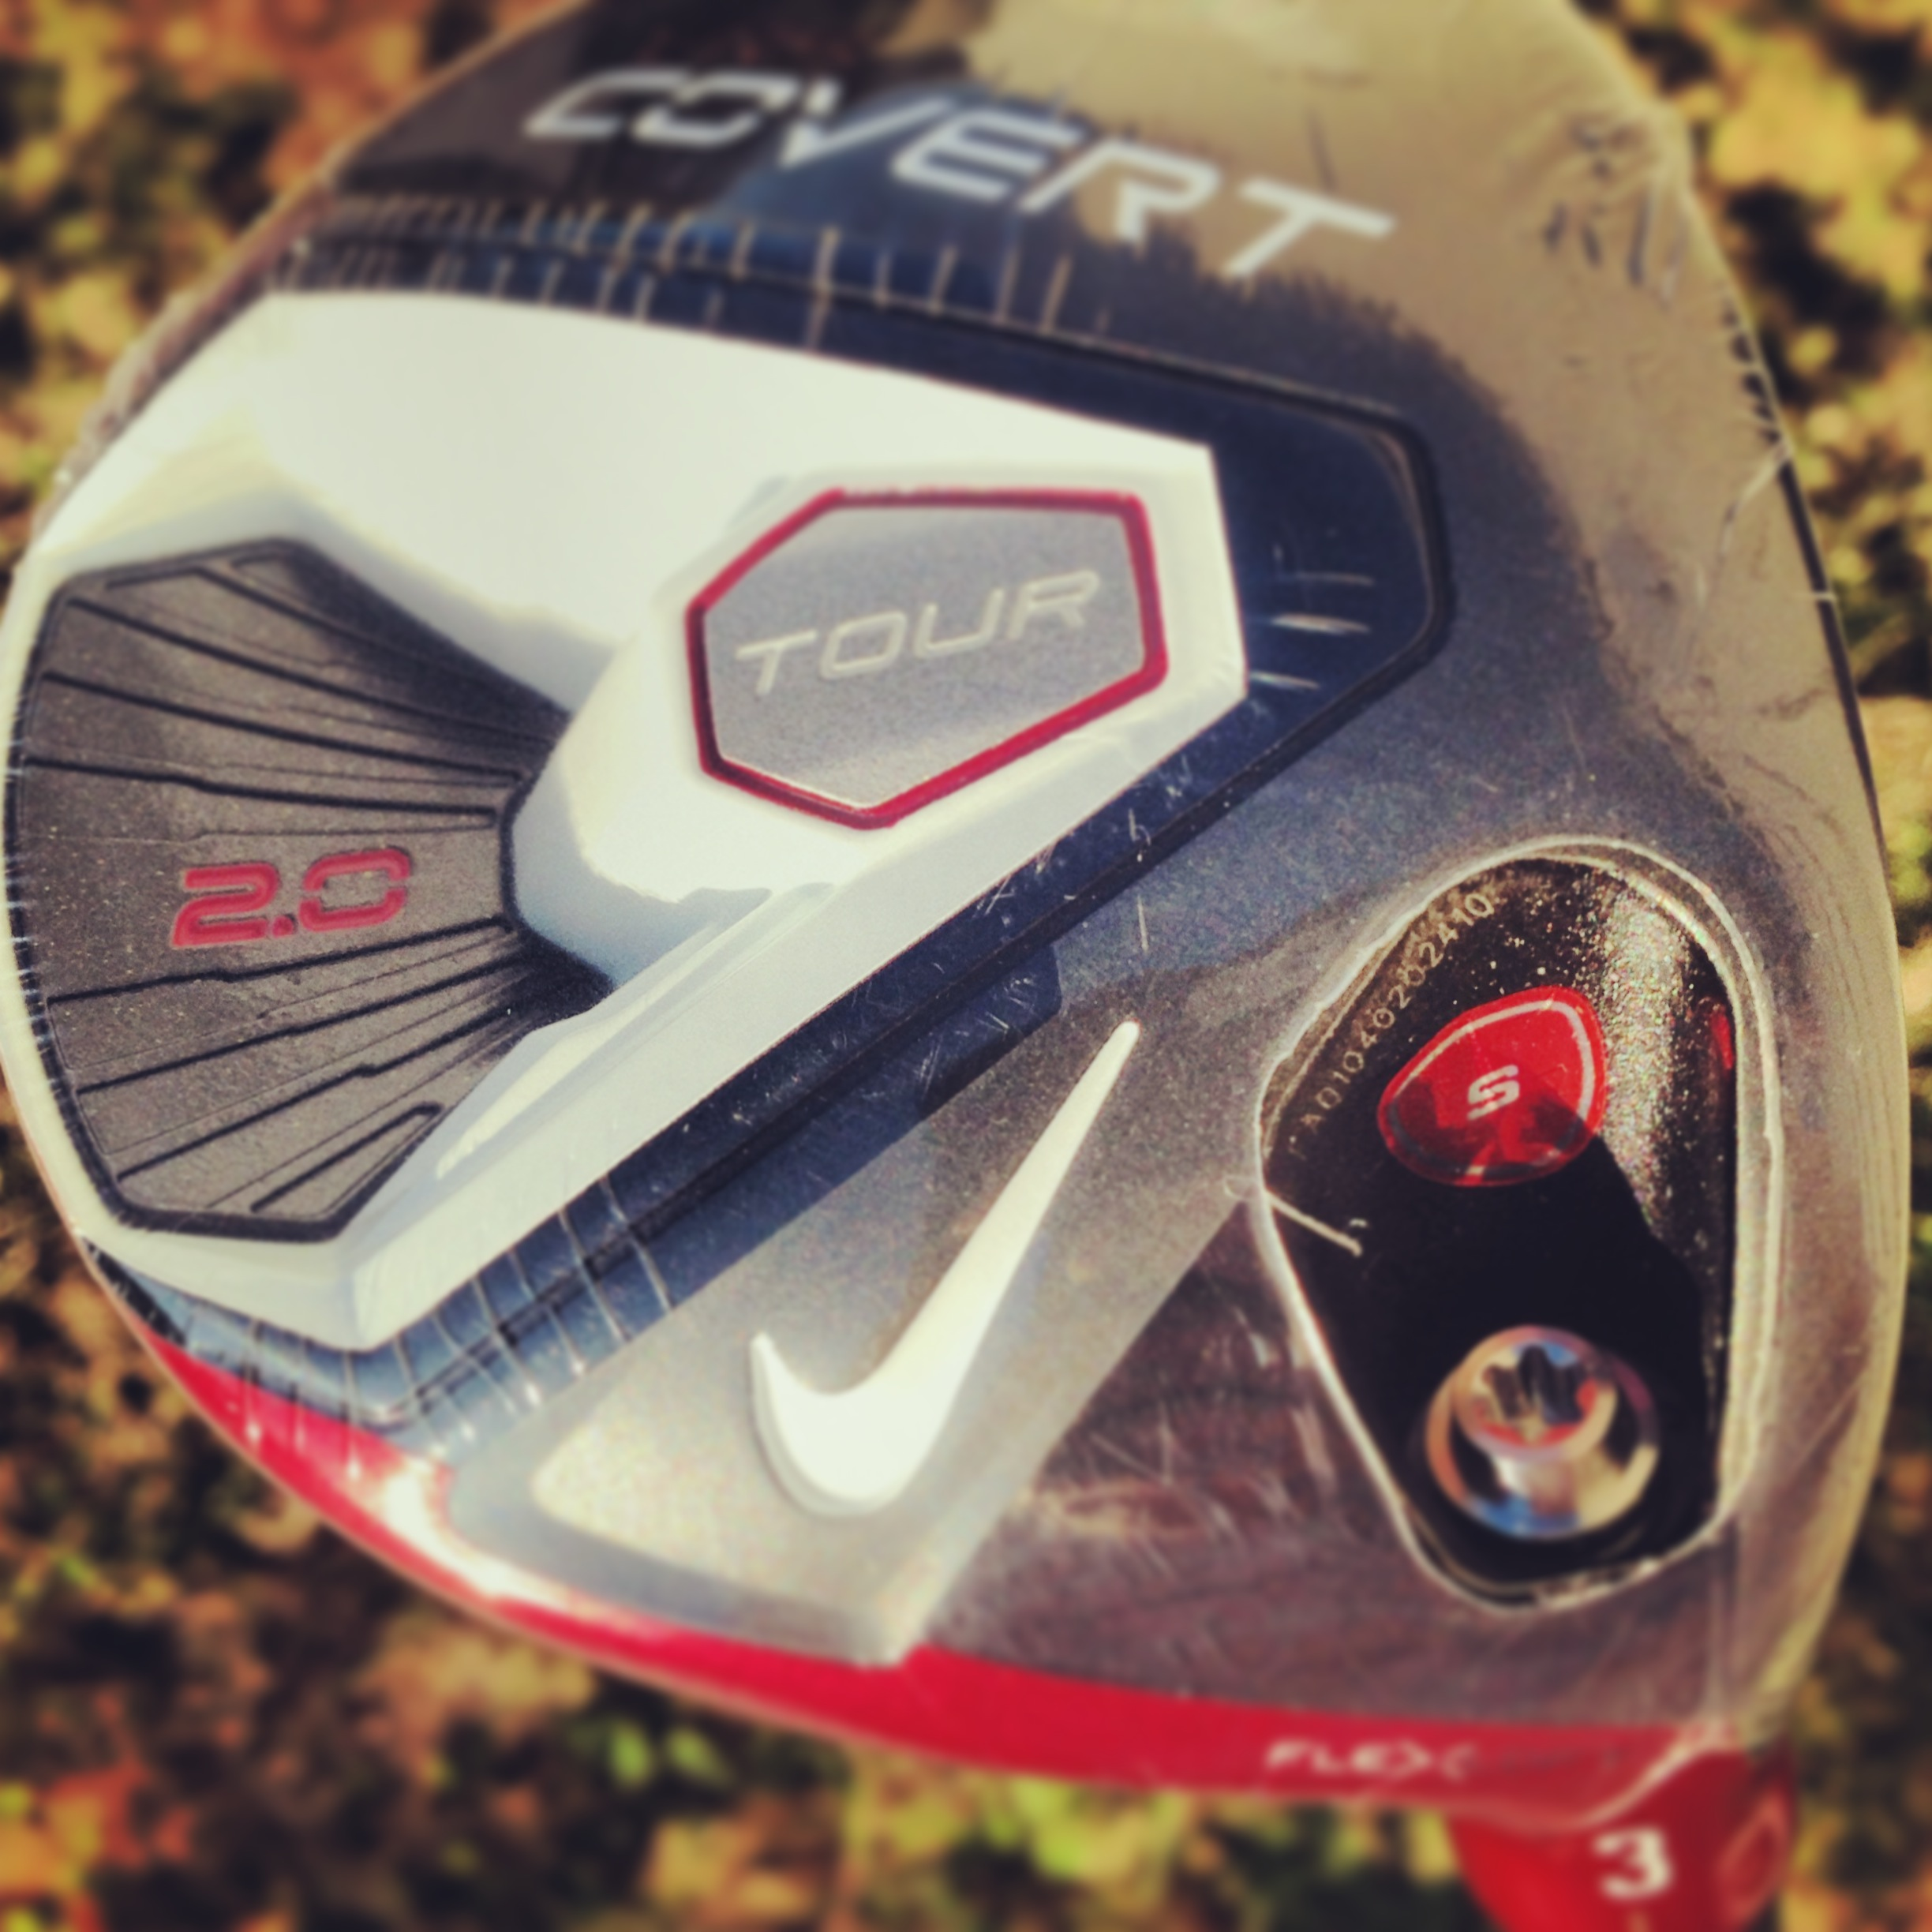 Covert 2.0 Tour Fairway Wood Sole